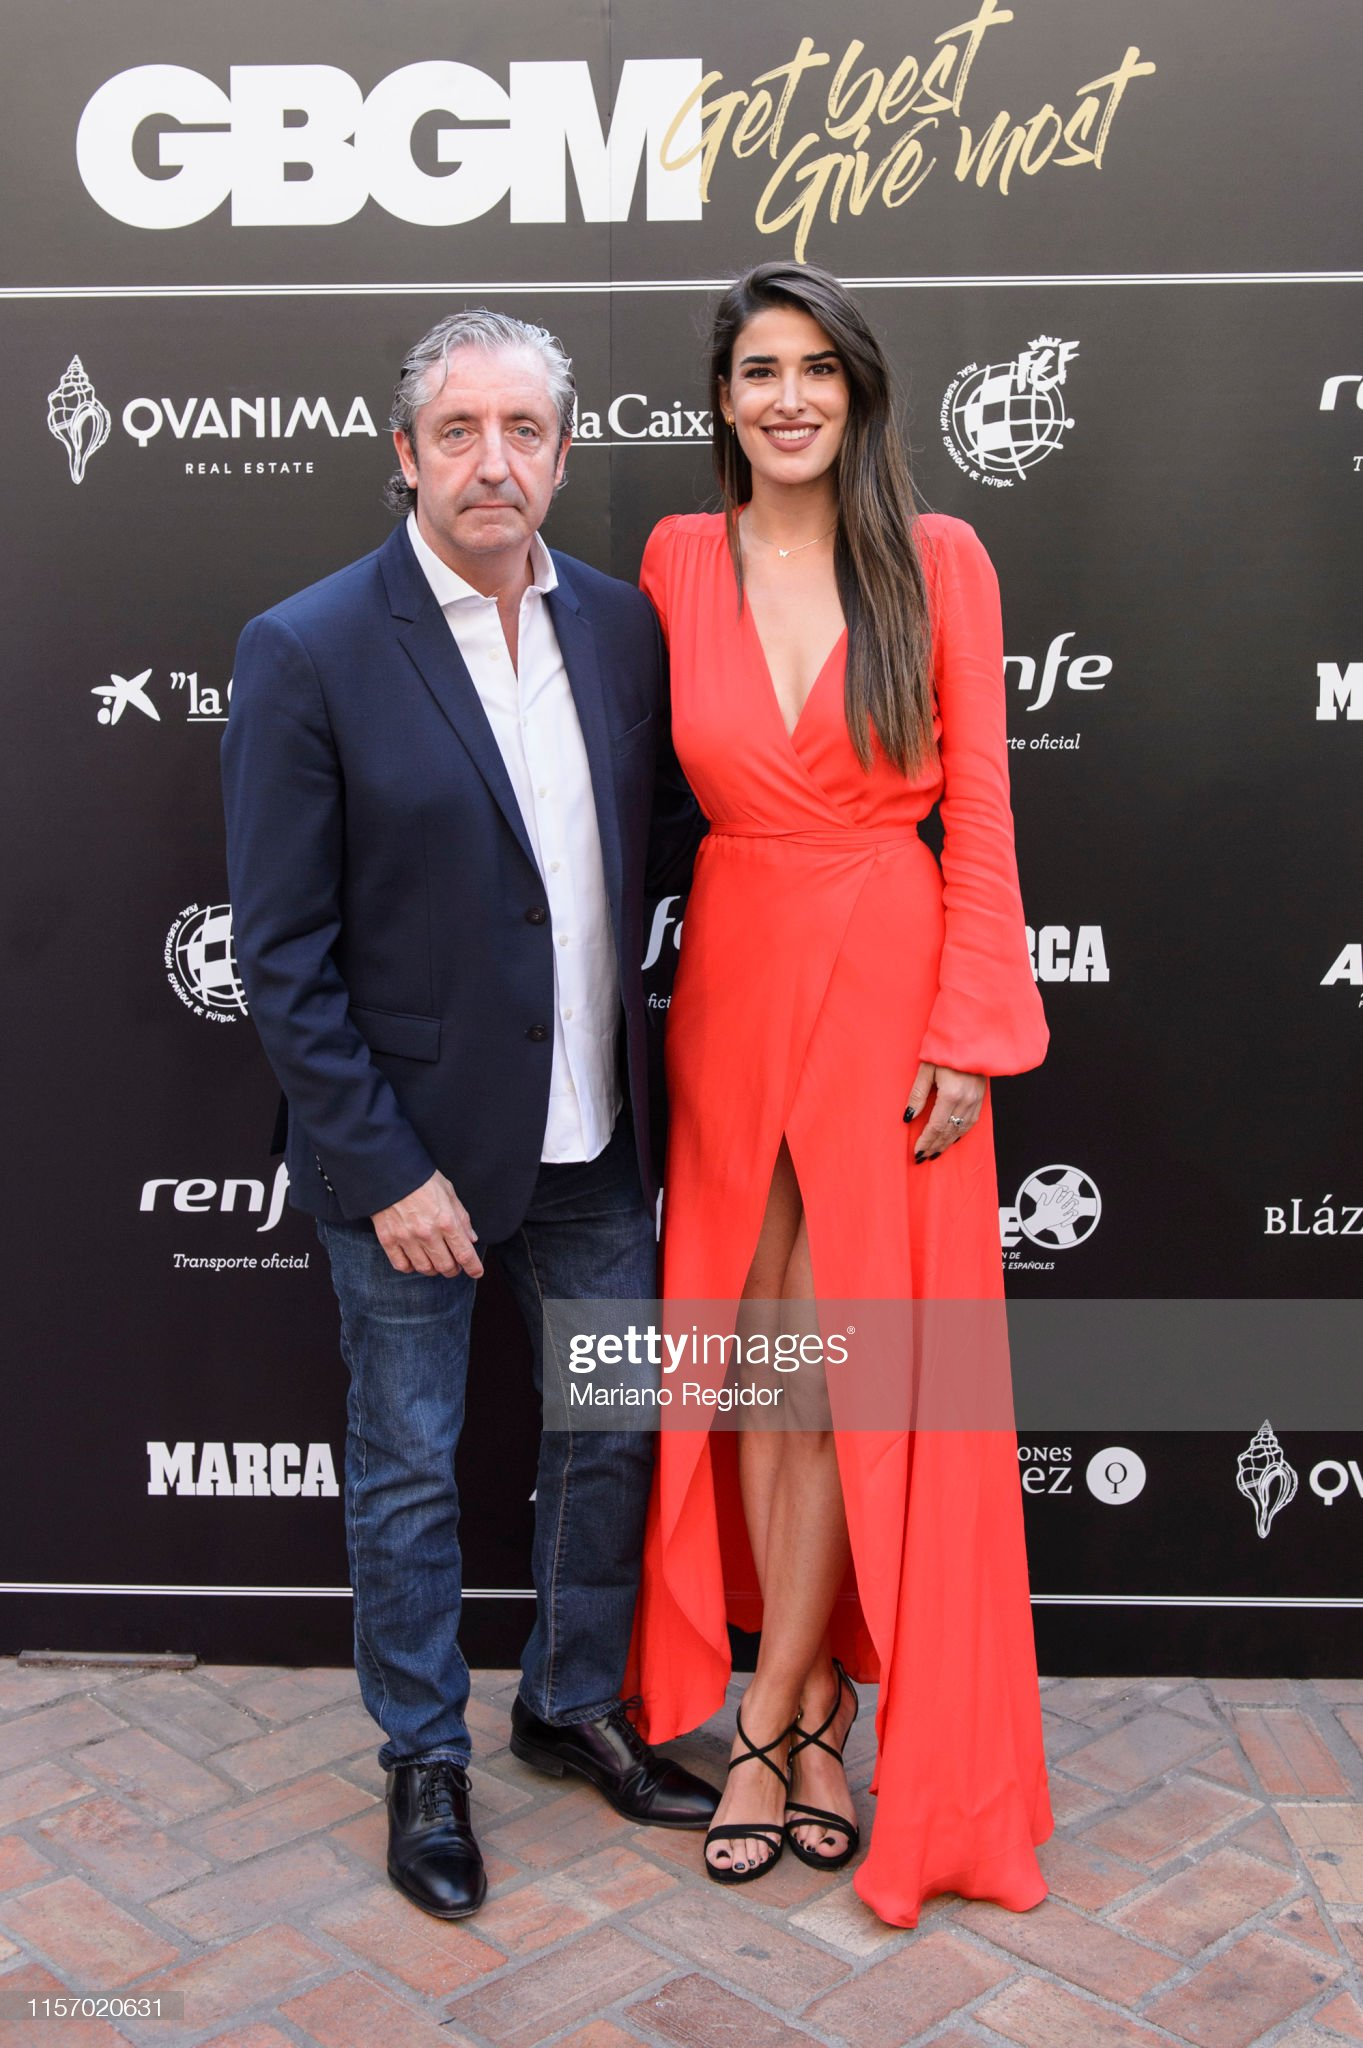 ¿Cuánto mide Lidia Torrent? - Altura Josep-pedrerol-and-lidia-torrent-attend-get-best-give-most-charity-picture-id1157020631?s=2048x2048